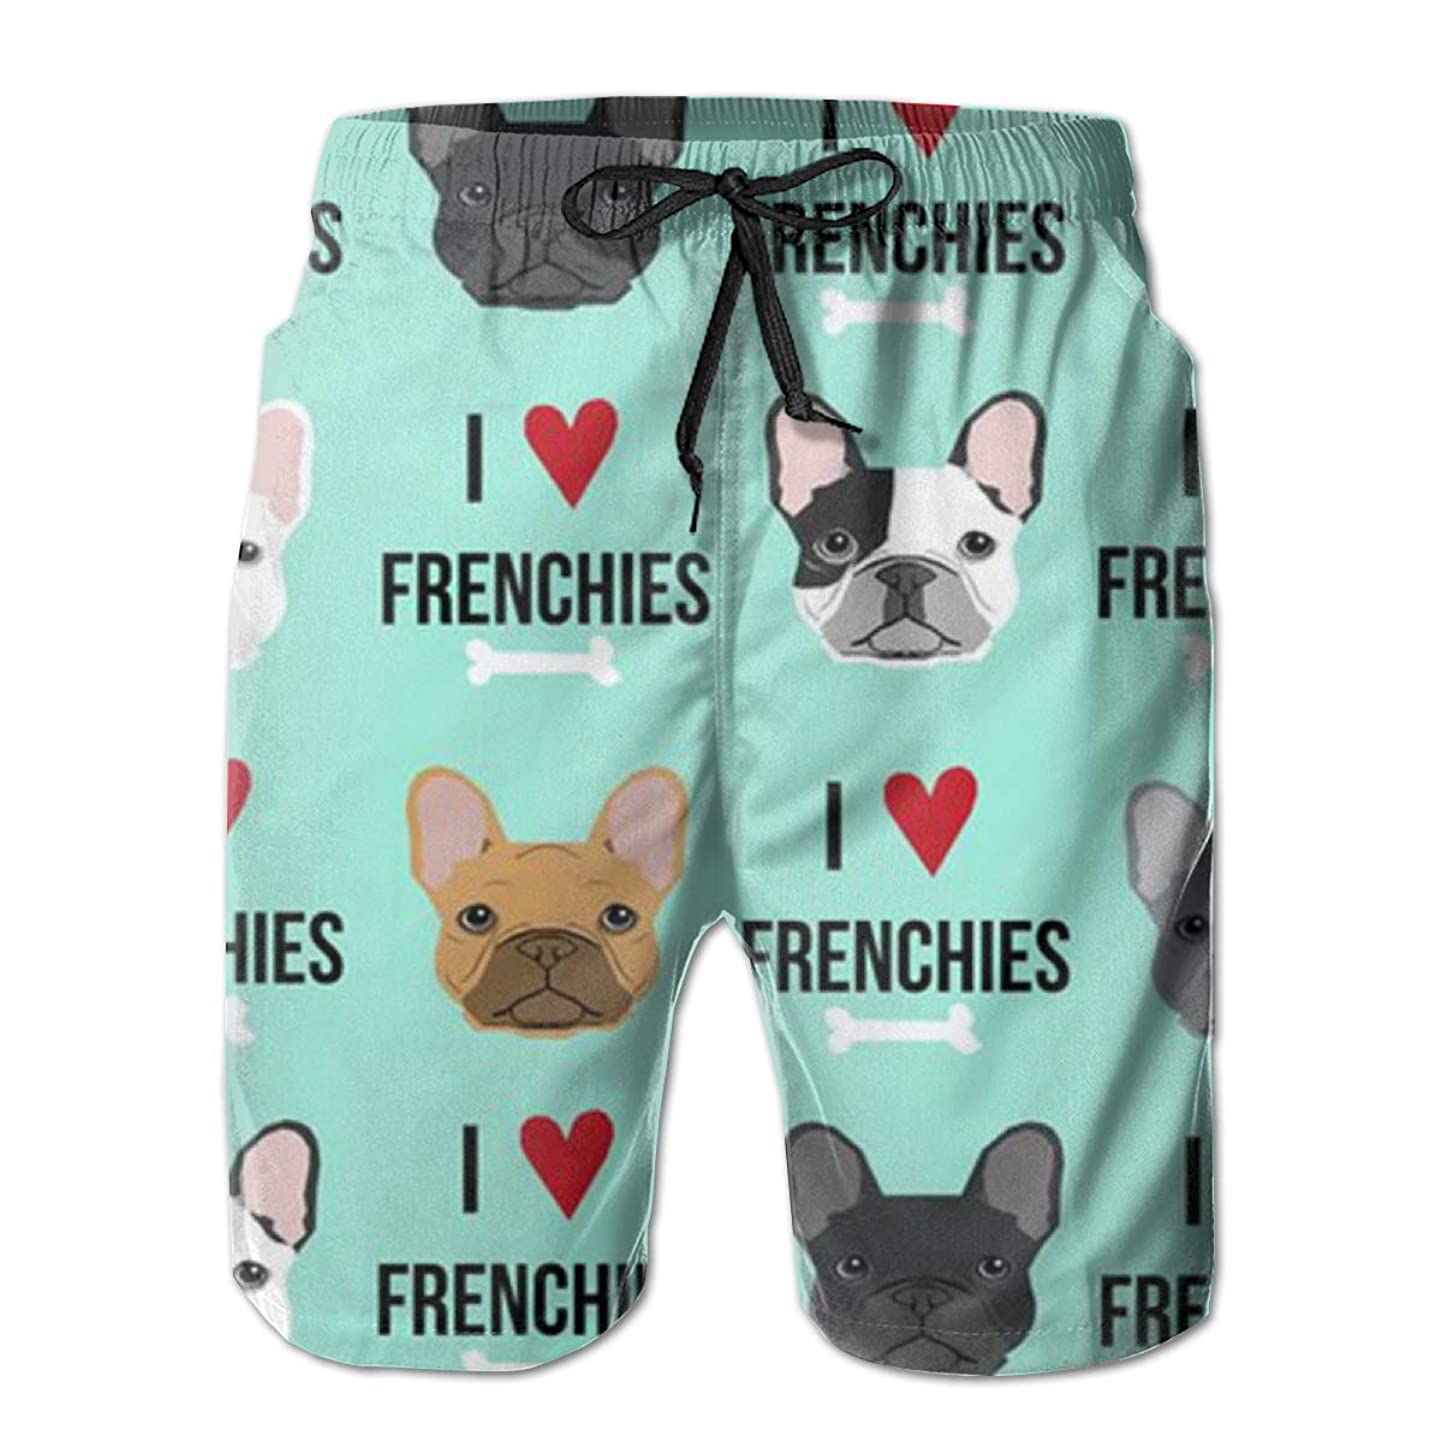 Jiqnajn6 Frenchie Dog Fabric Men's Swim Trunks Quick Dry Summer Surf Beach Board Shorts with Mesh Lining/Side Pockets poozzieaswk6